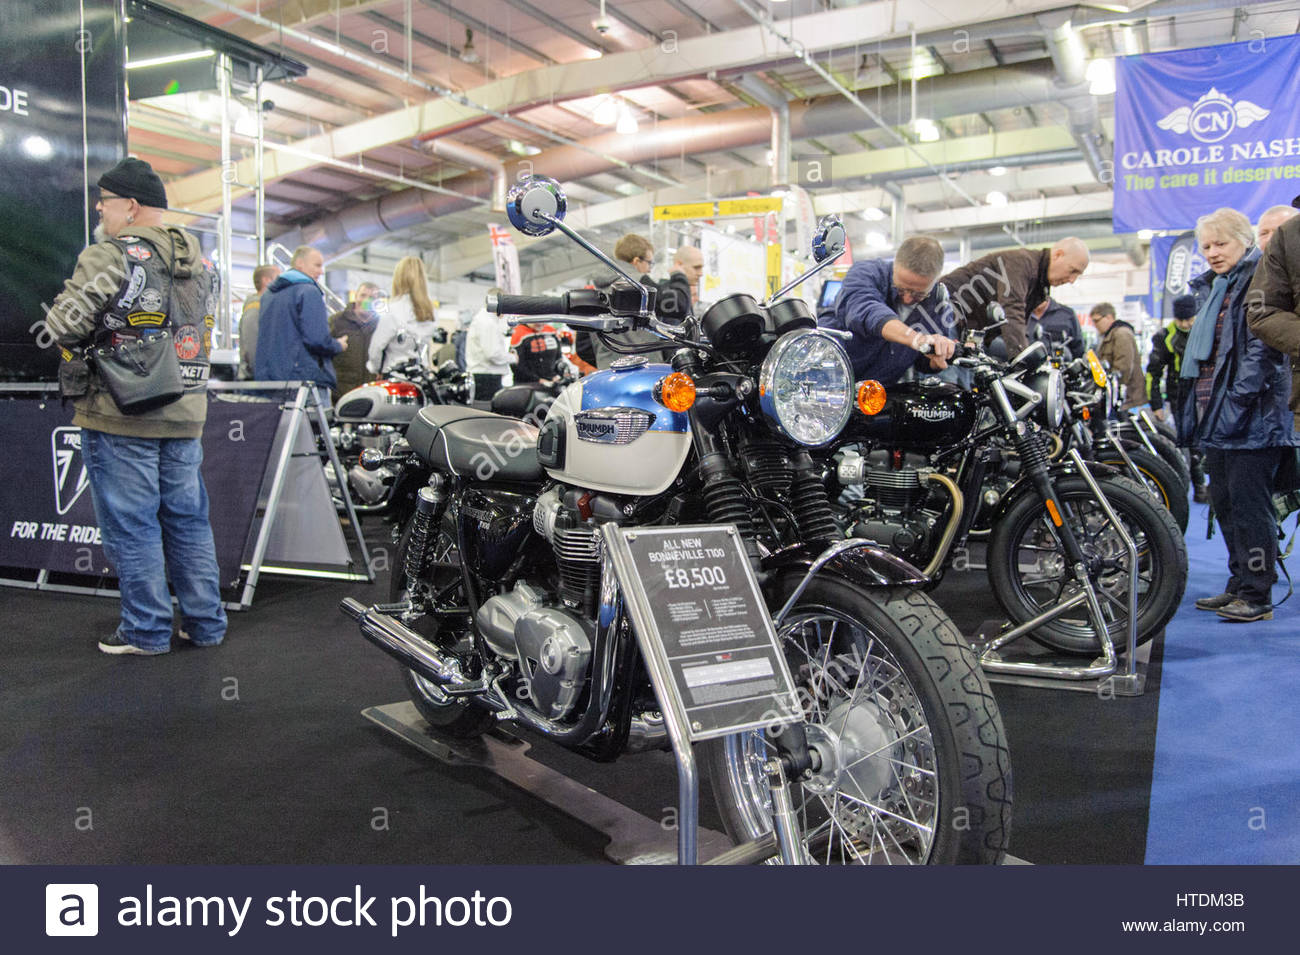 Edinburgh, UK. 11 March, 2017. Triumph stand at the Carole Nash MCN Scottish Motorcycle Show. Roger Gaisford/Alamy - Stock Image